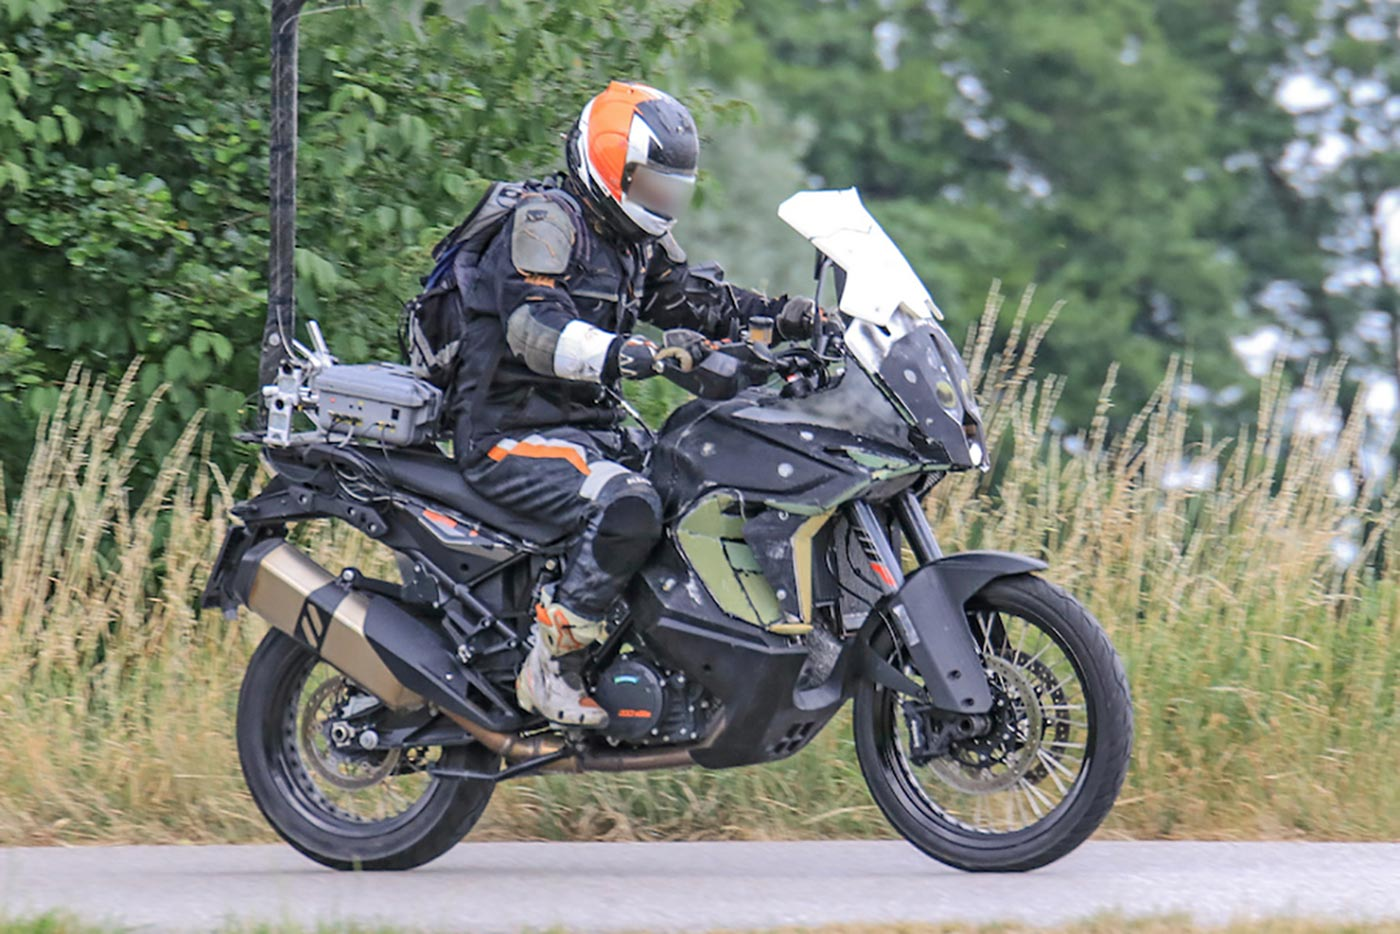 Updates Coming to the KTM 1090 Adventure